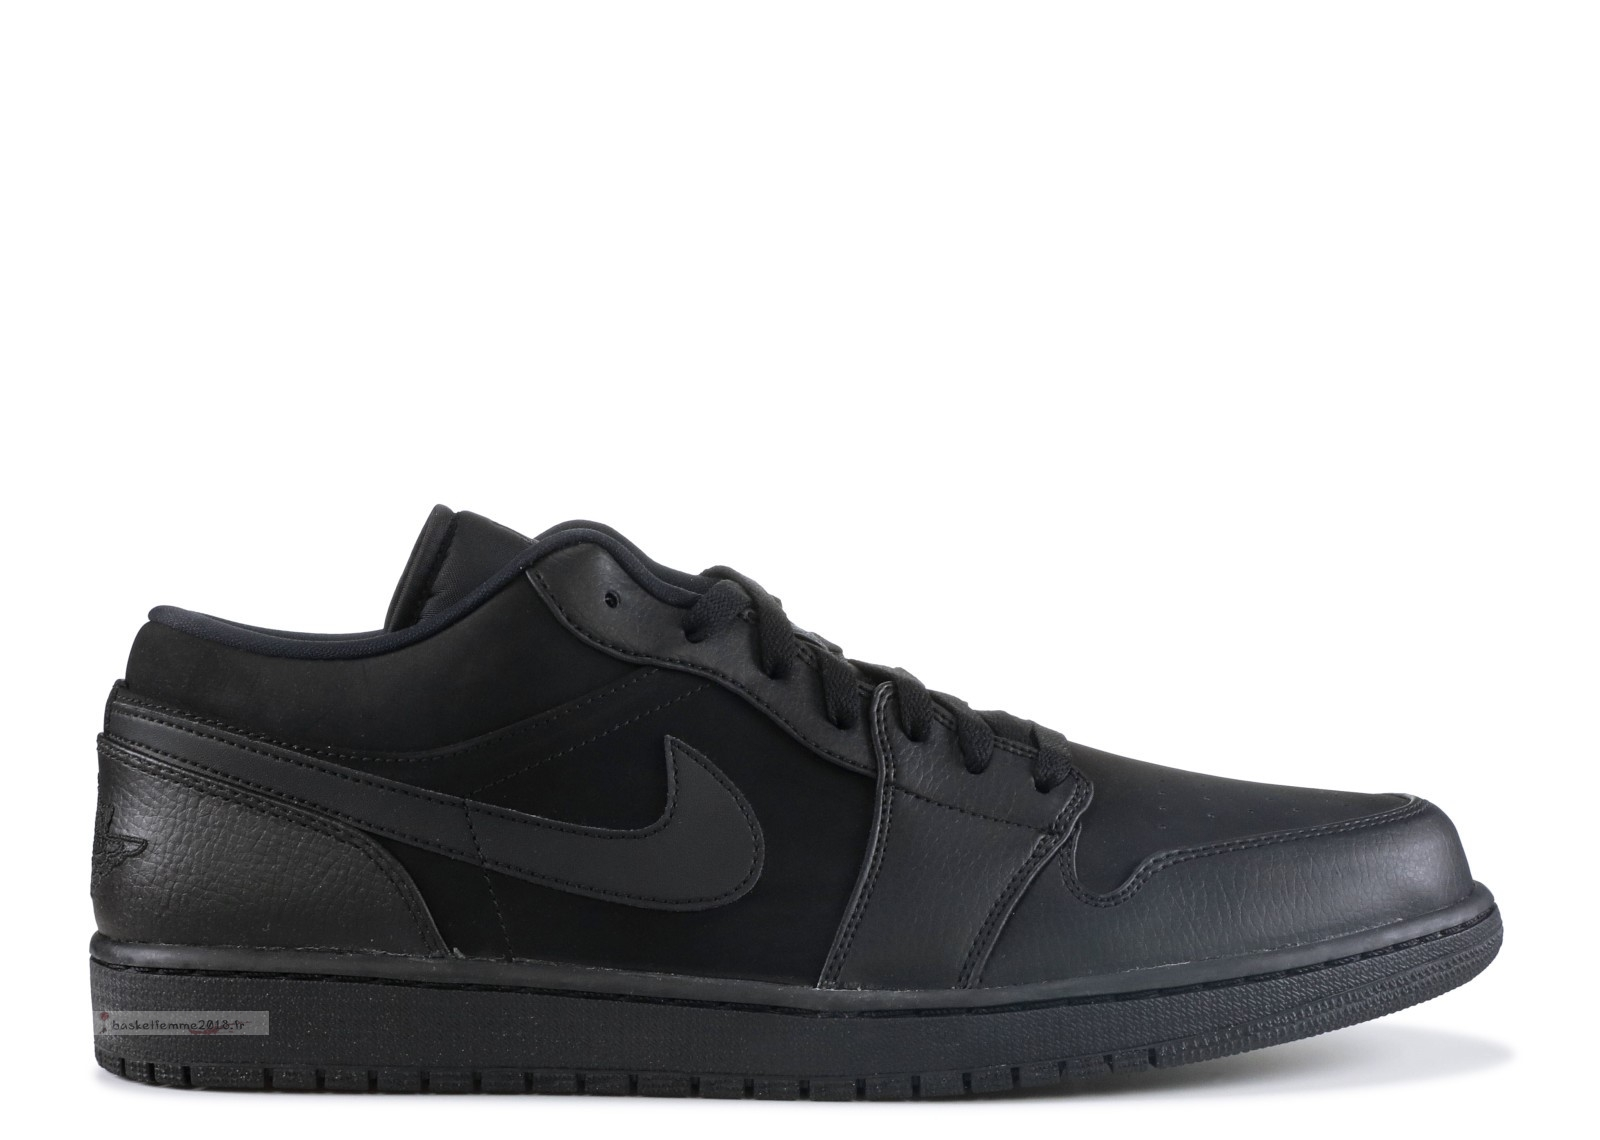 Air Jordan 1 Low Noir (553558-011) Chaussure de Basket